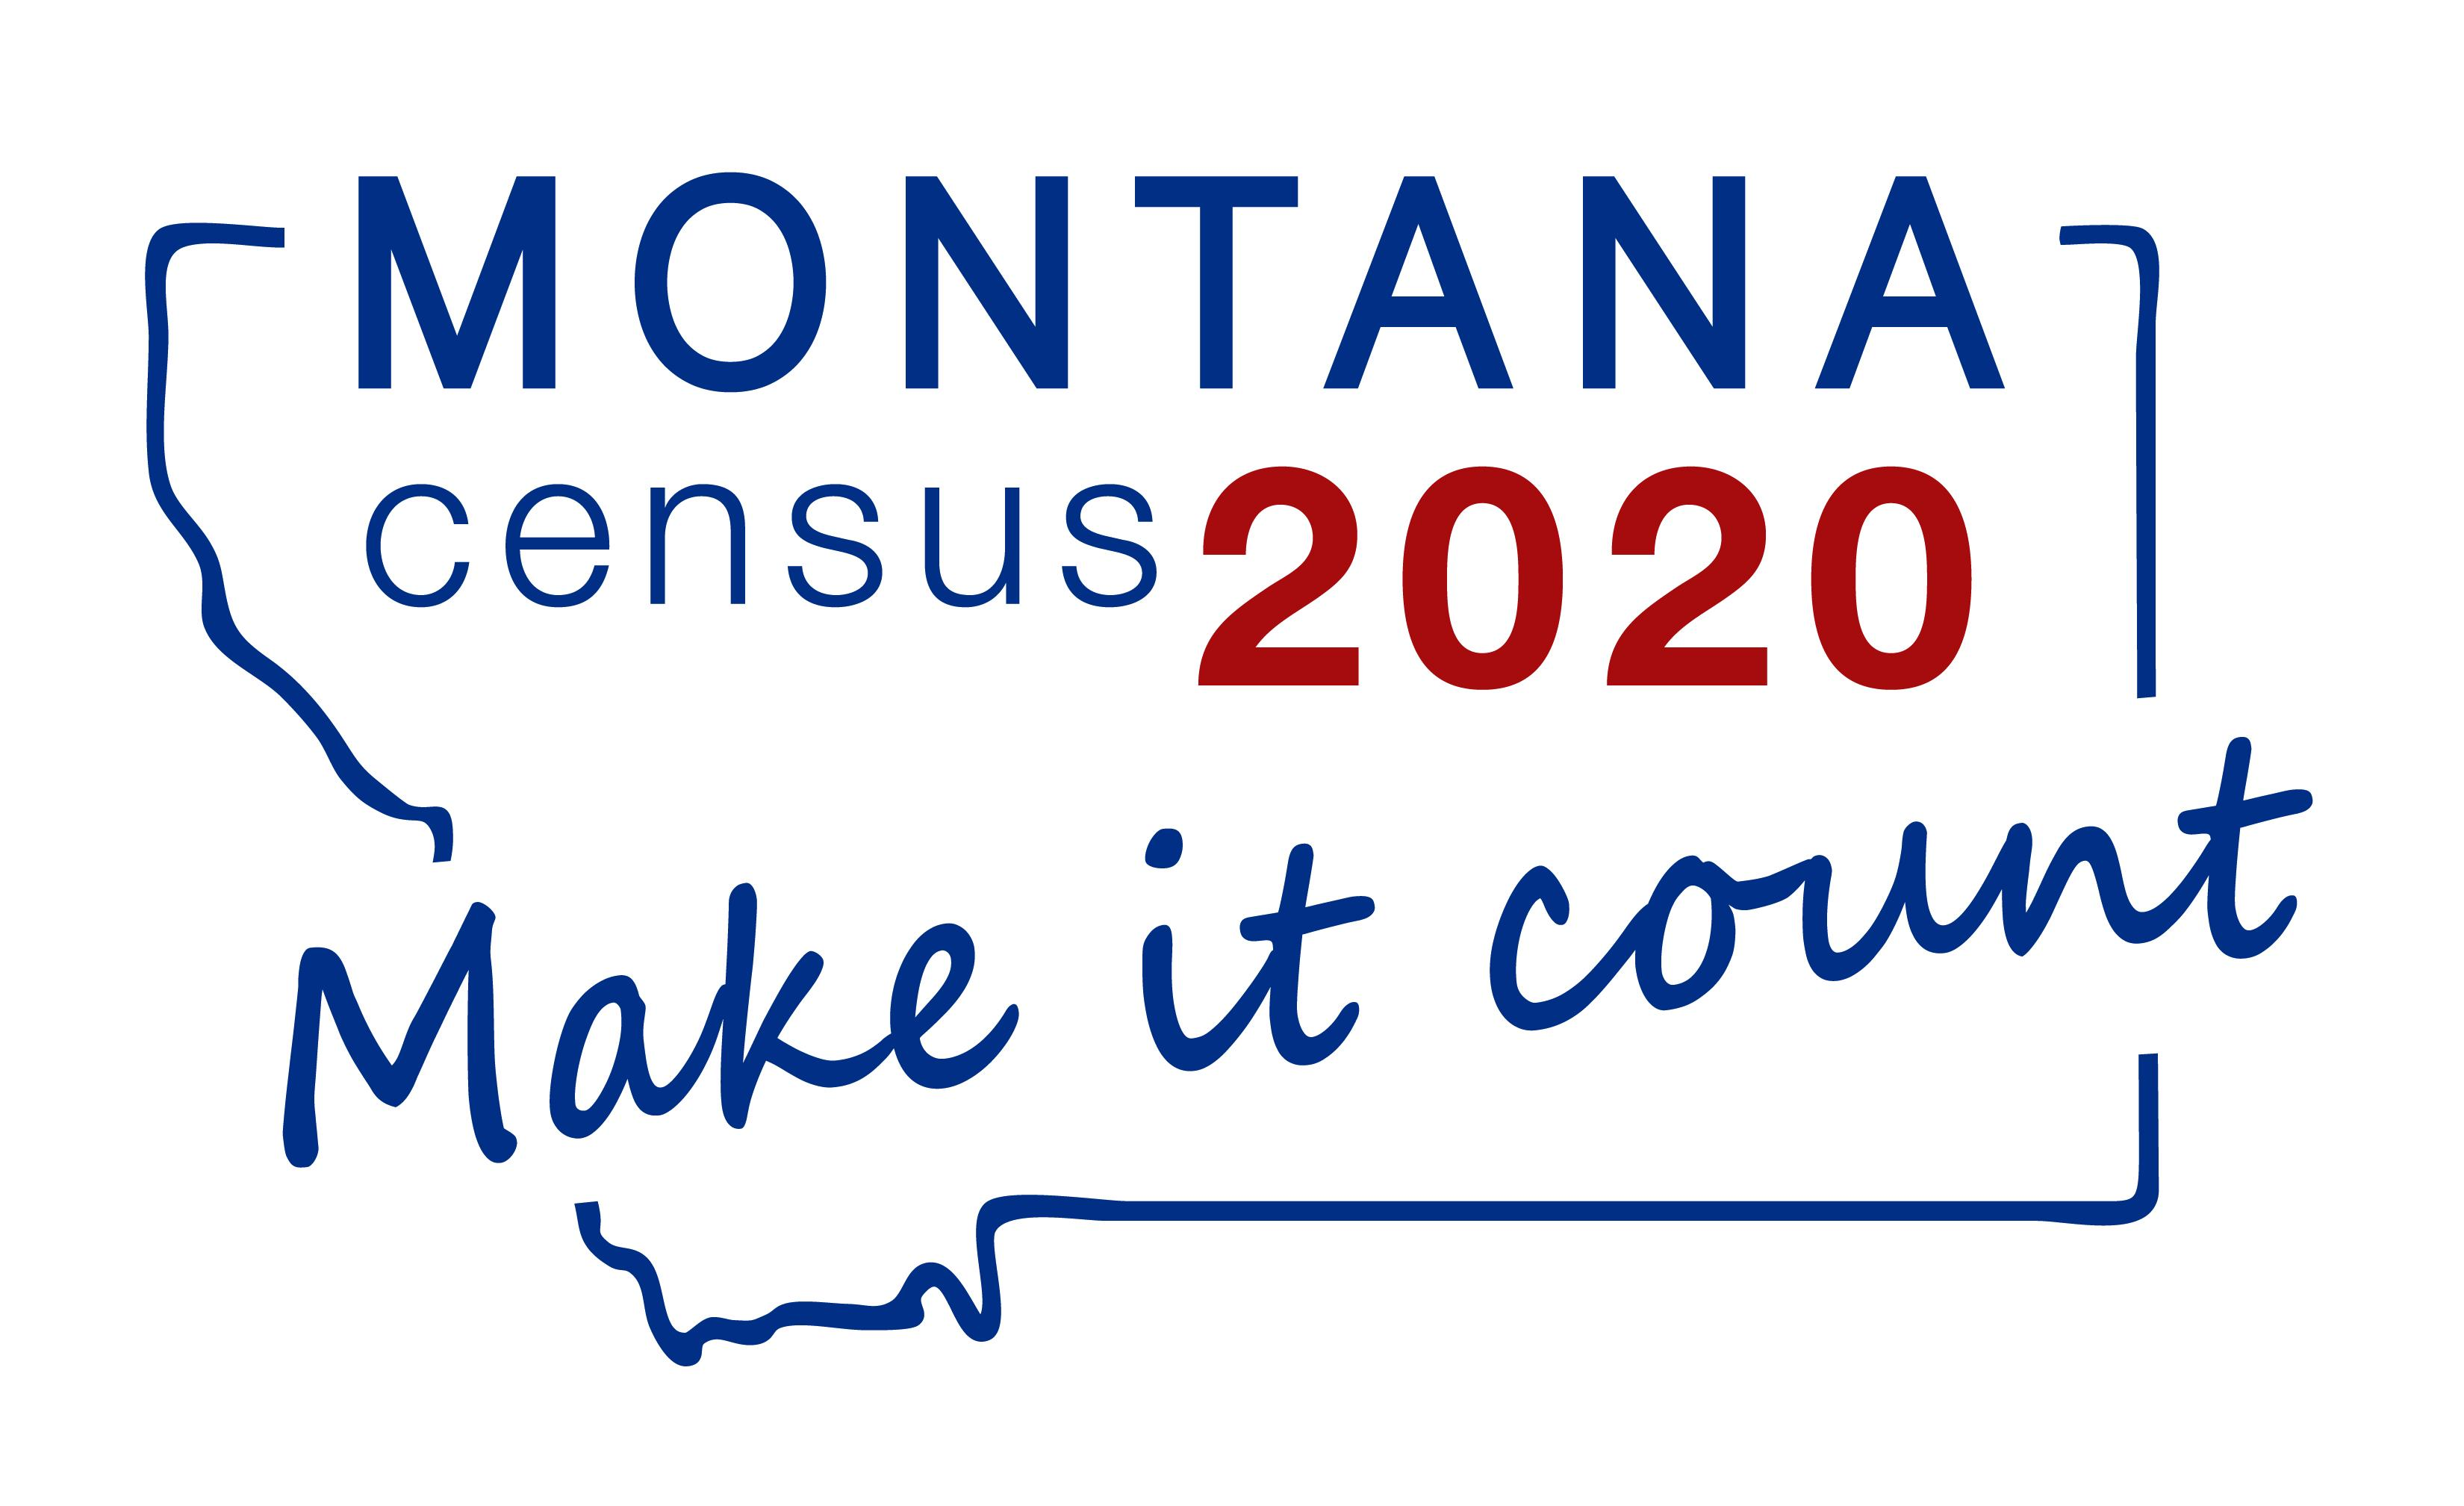 outline of state of Montana with Census 2020 Make it Count